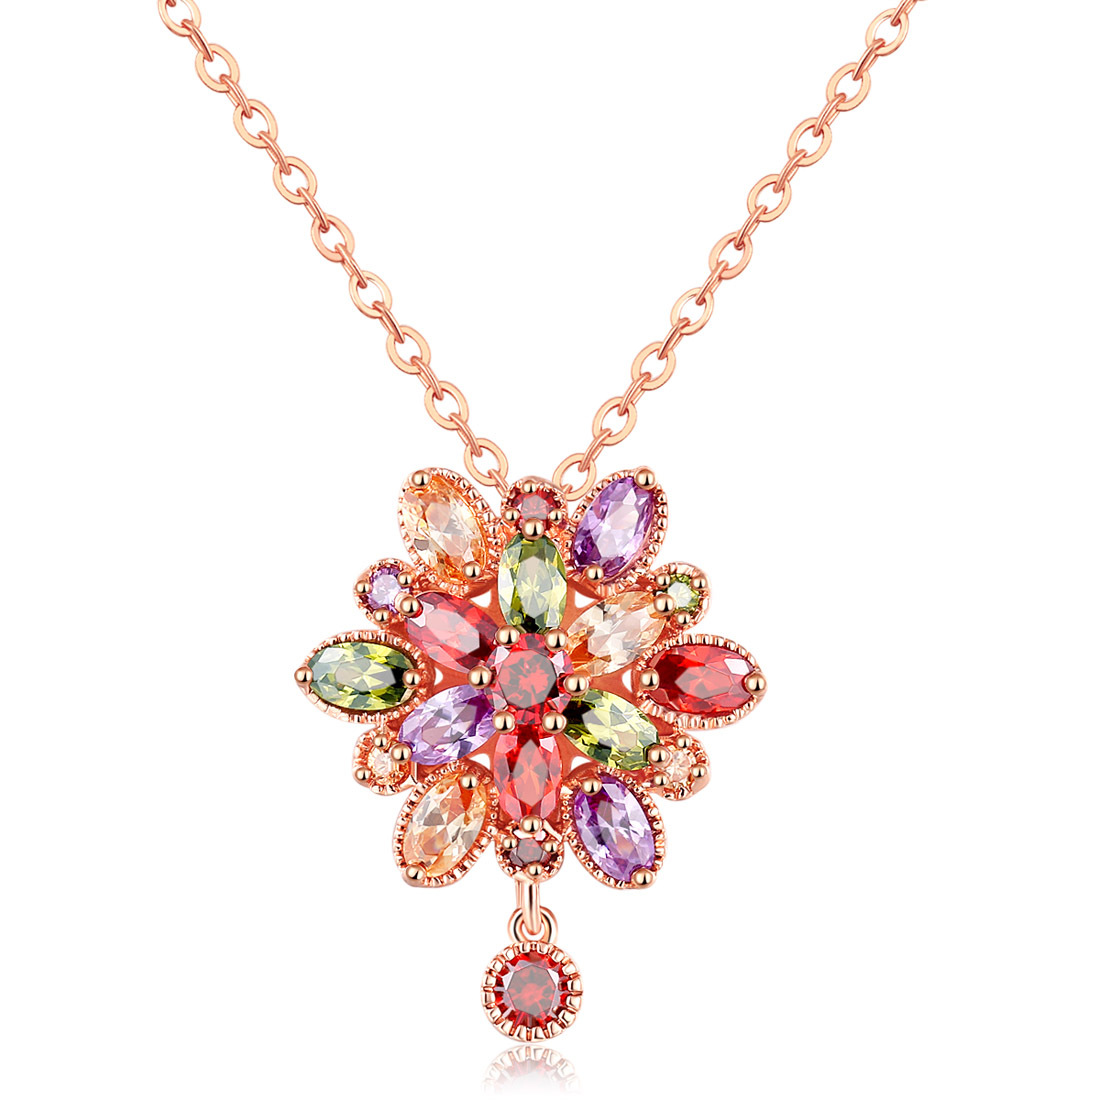 Modest Dropship 2019 New Fashion Boutique Necklace Color Zircon Rose Gold Necklace Dragon Girl Flower Pendant Female Models Party Gifts Limpid In Sight Necklaces & Pendants